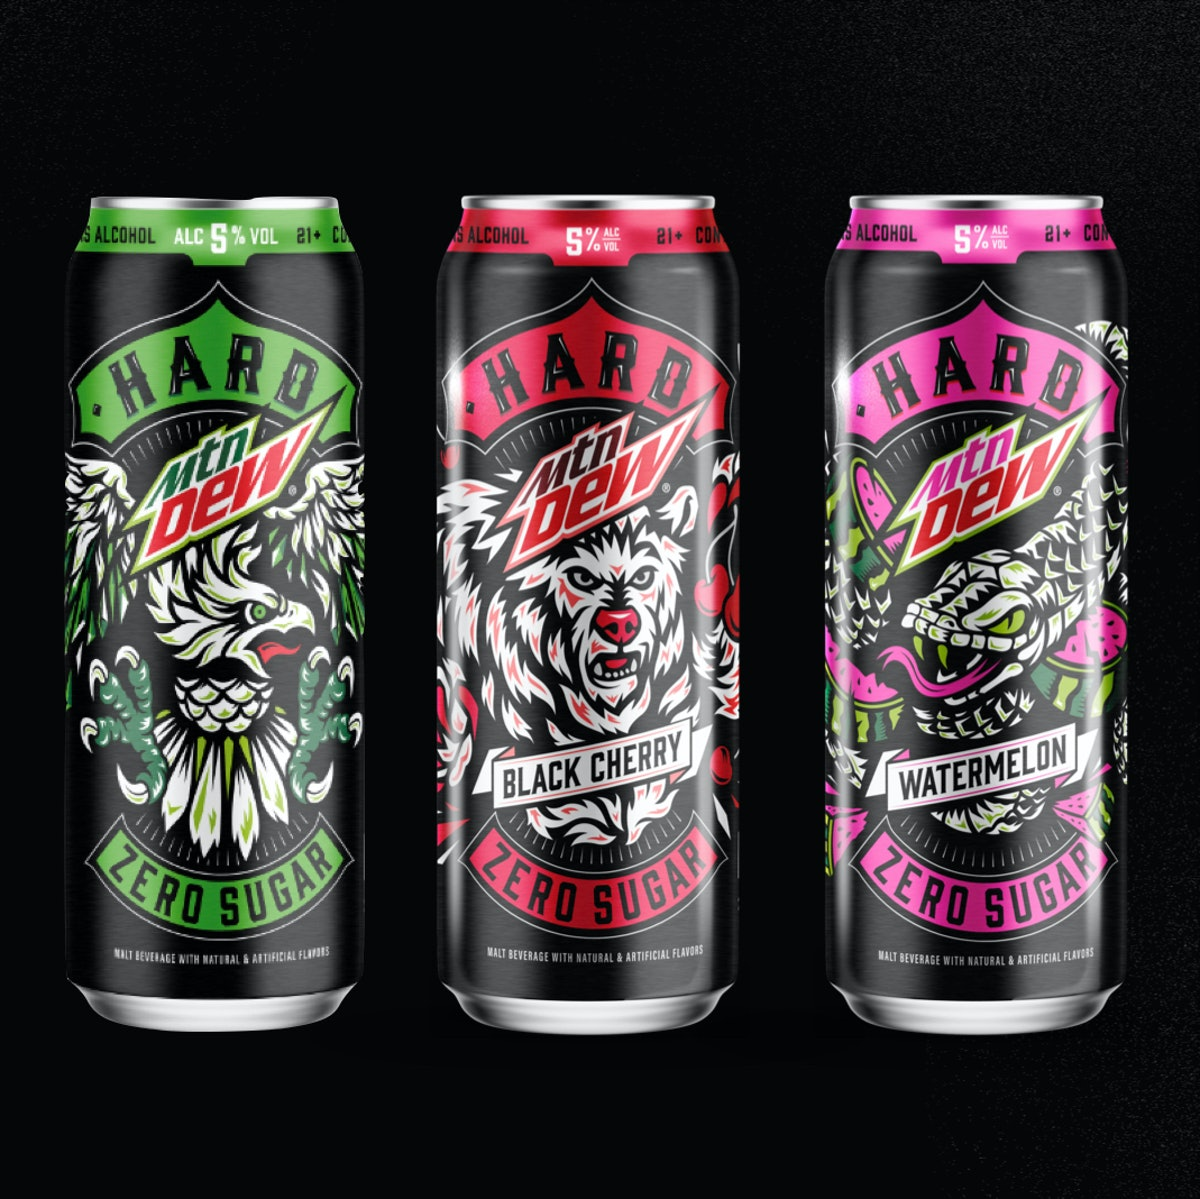 Here's what to know about if there is caffeine in Hard Mountain Dew.